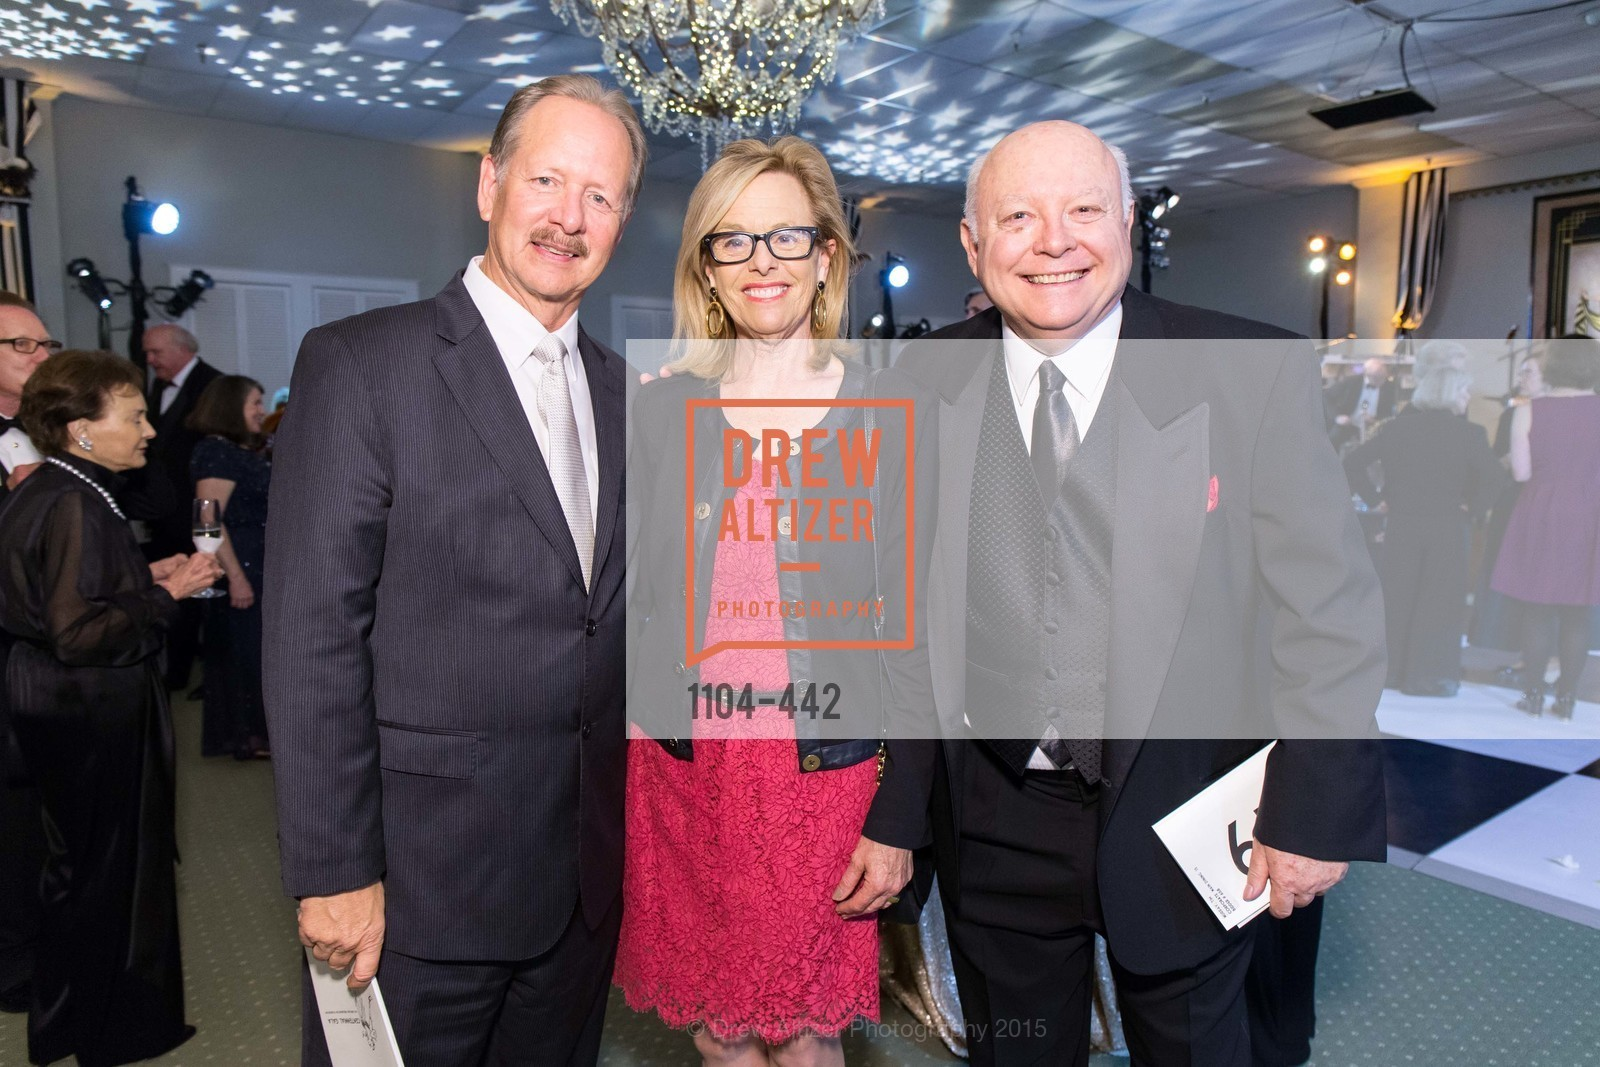 Brian Cano, Mary Edwards, Tim Murray, Metropolitan Club Presents THE CENTENNIAL GALA, Metropolitan Club. 640 Sutter Street, November 5th, 2015,Drew Altizer, Drew Altizer Photography, full-service event agency, private events, San Francisco photographer, photographer California